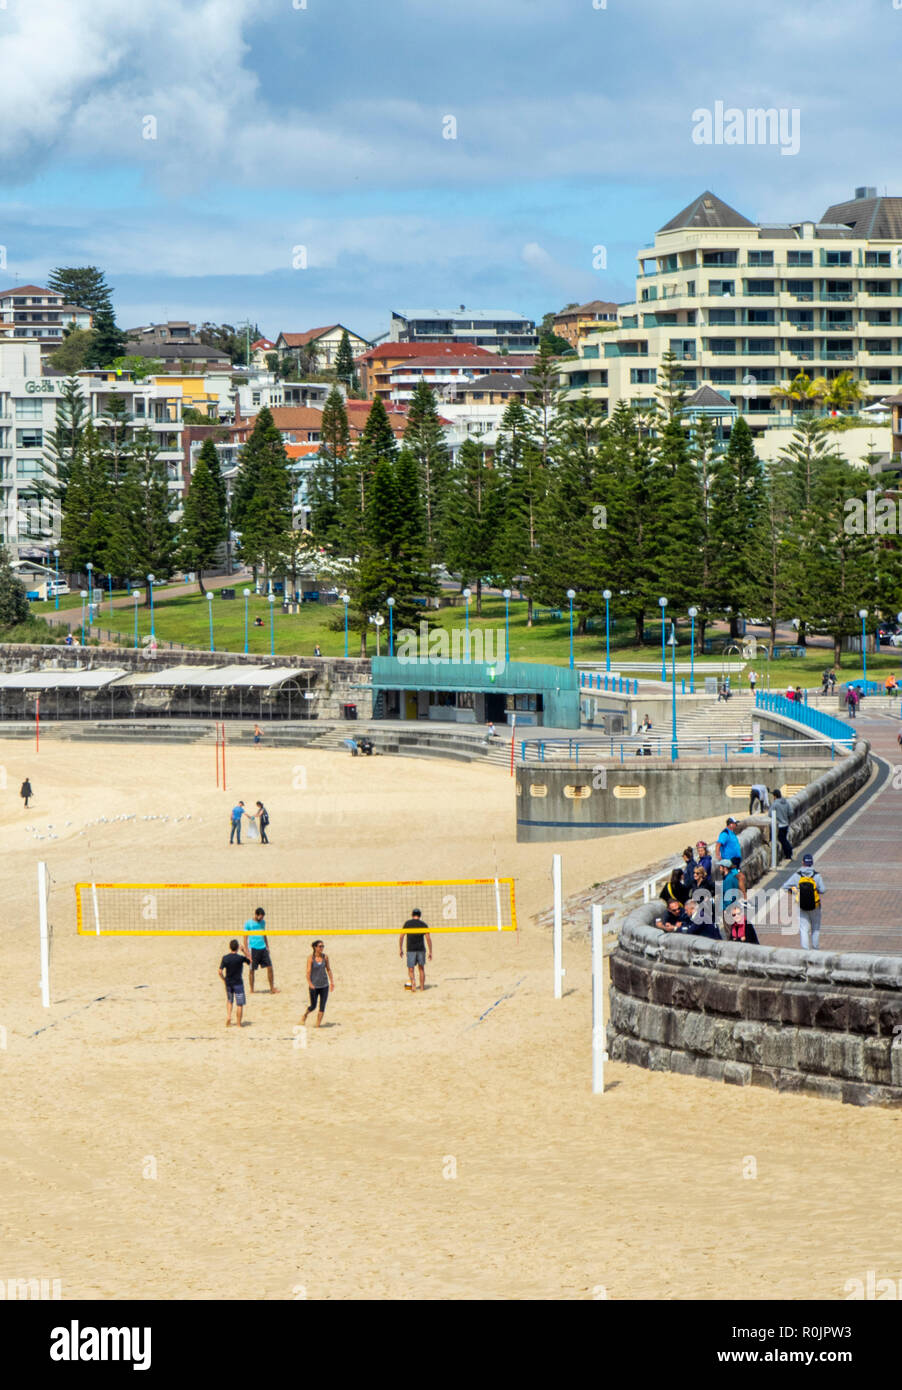 Four people playing beach volleyball at Coogee Beach  Sydney NSW Australia. - Stock Image